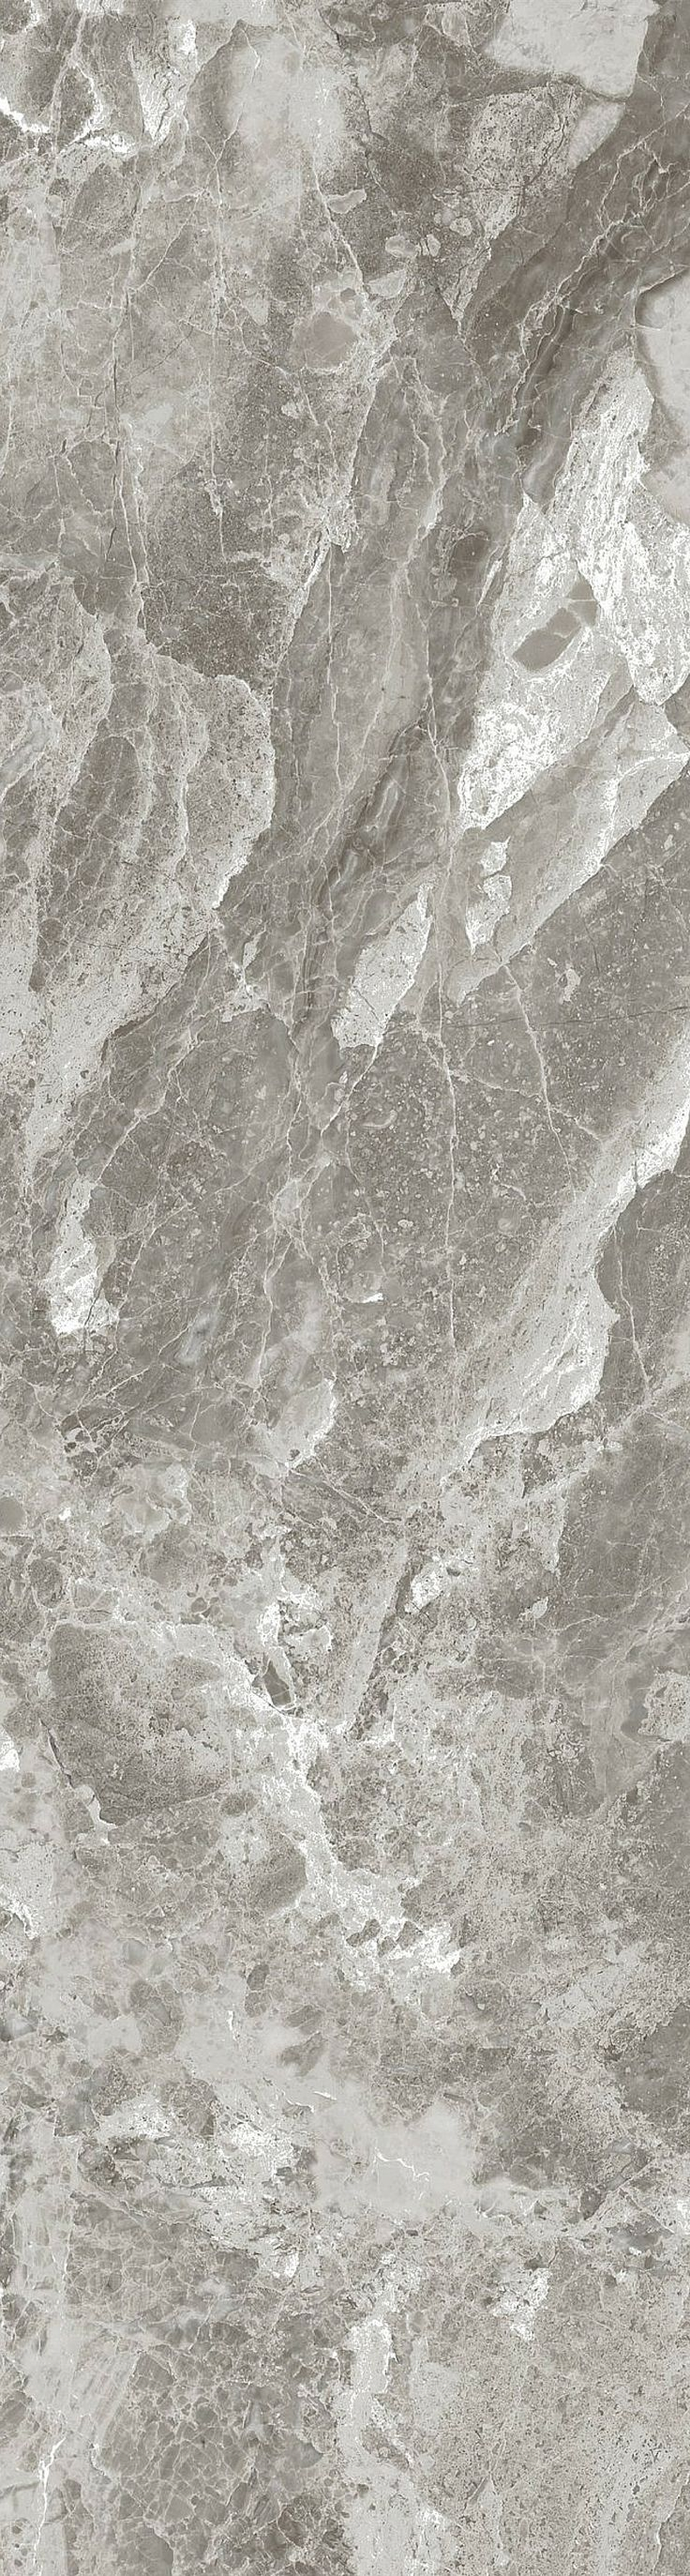 Porcelain Tile | Marble Look Classic Bardiglietto http://www.stonepeakceramics.com/products.php